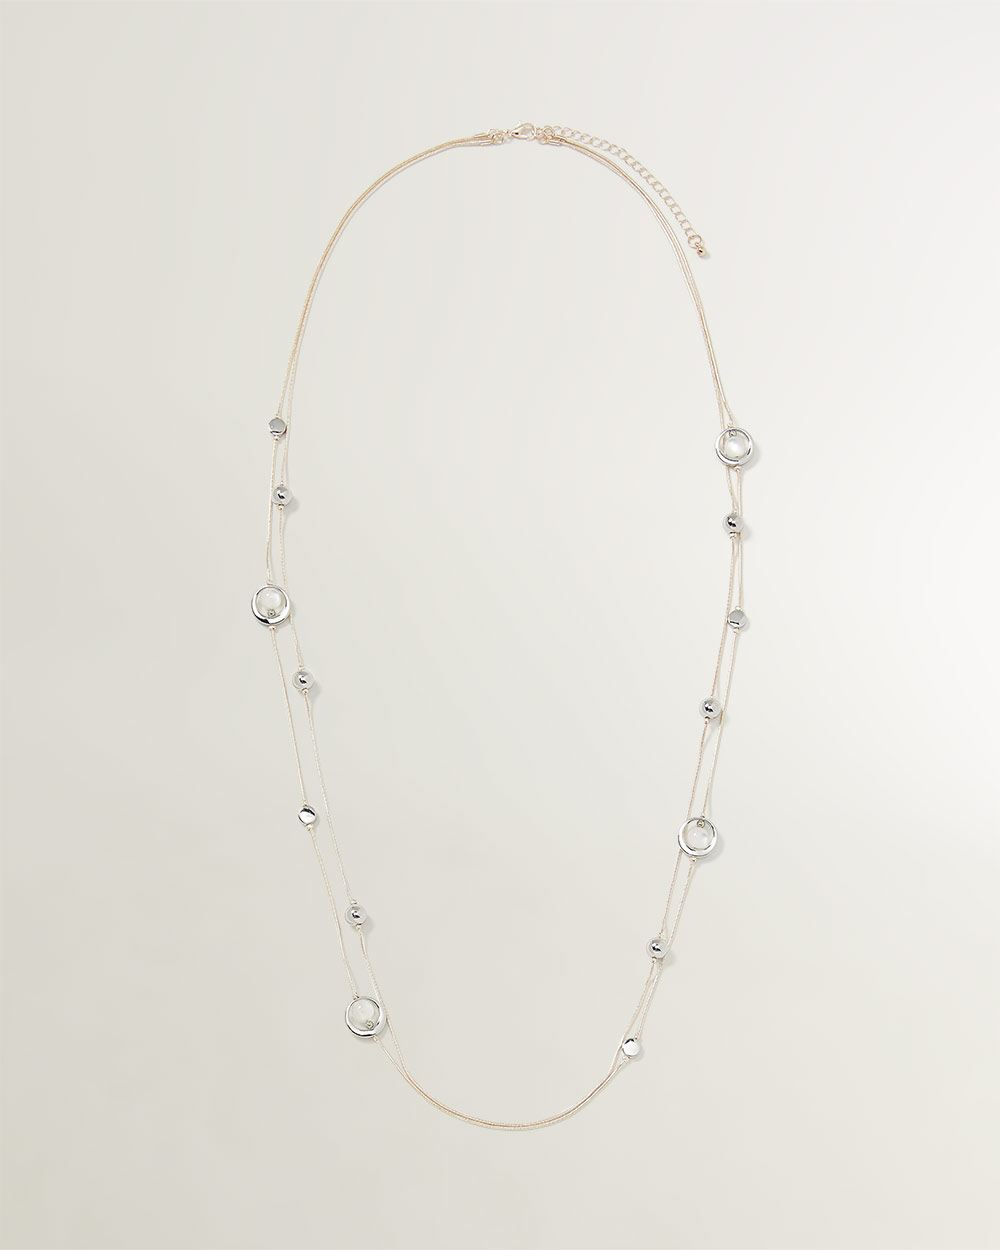 Multiple Beads Necklace